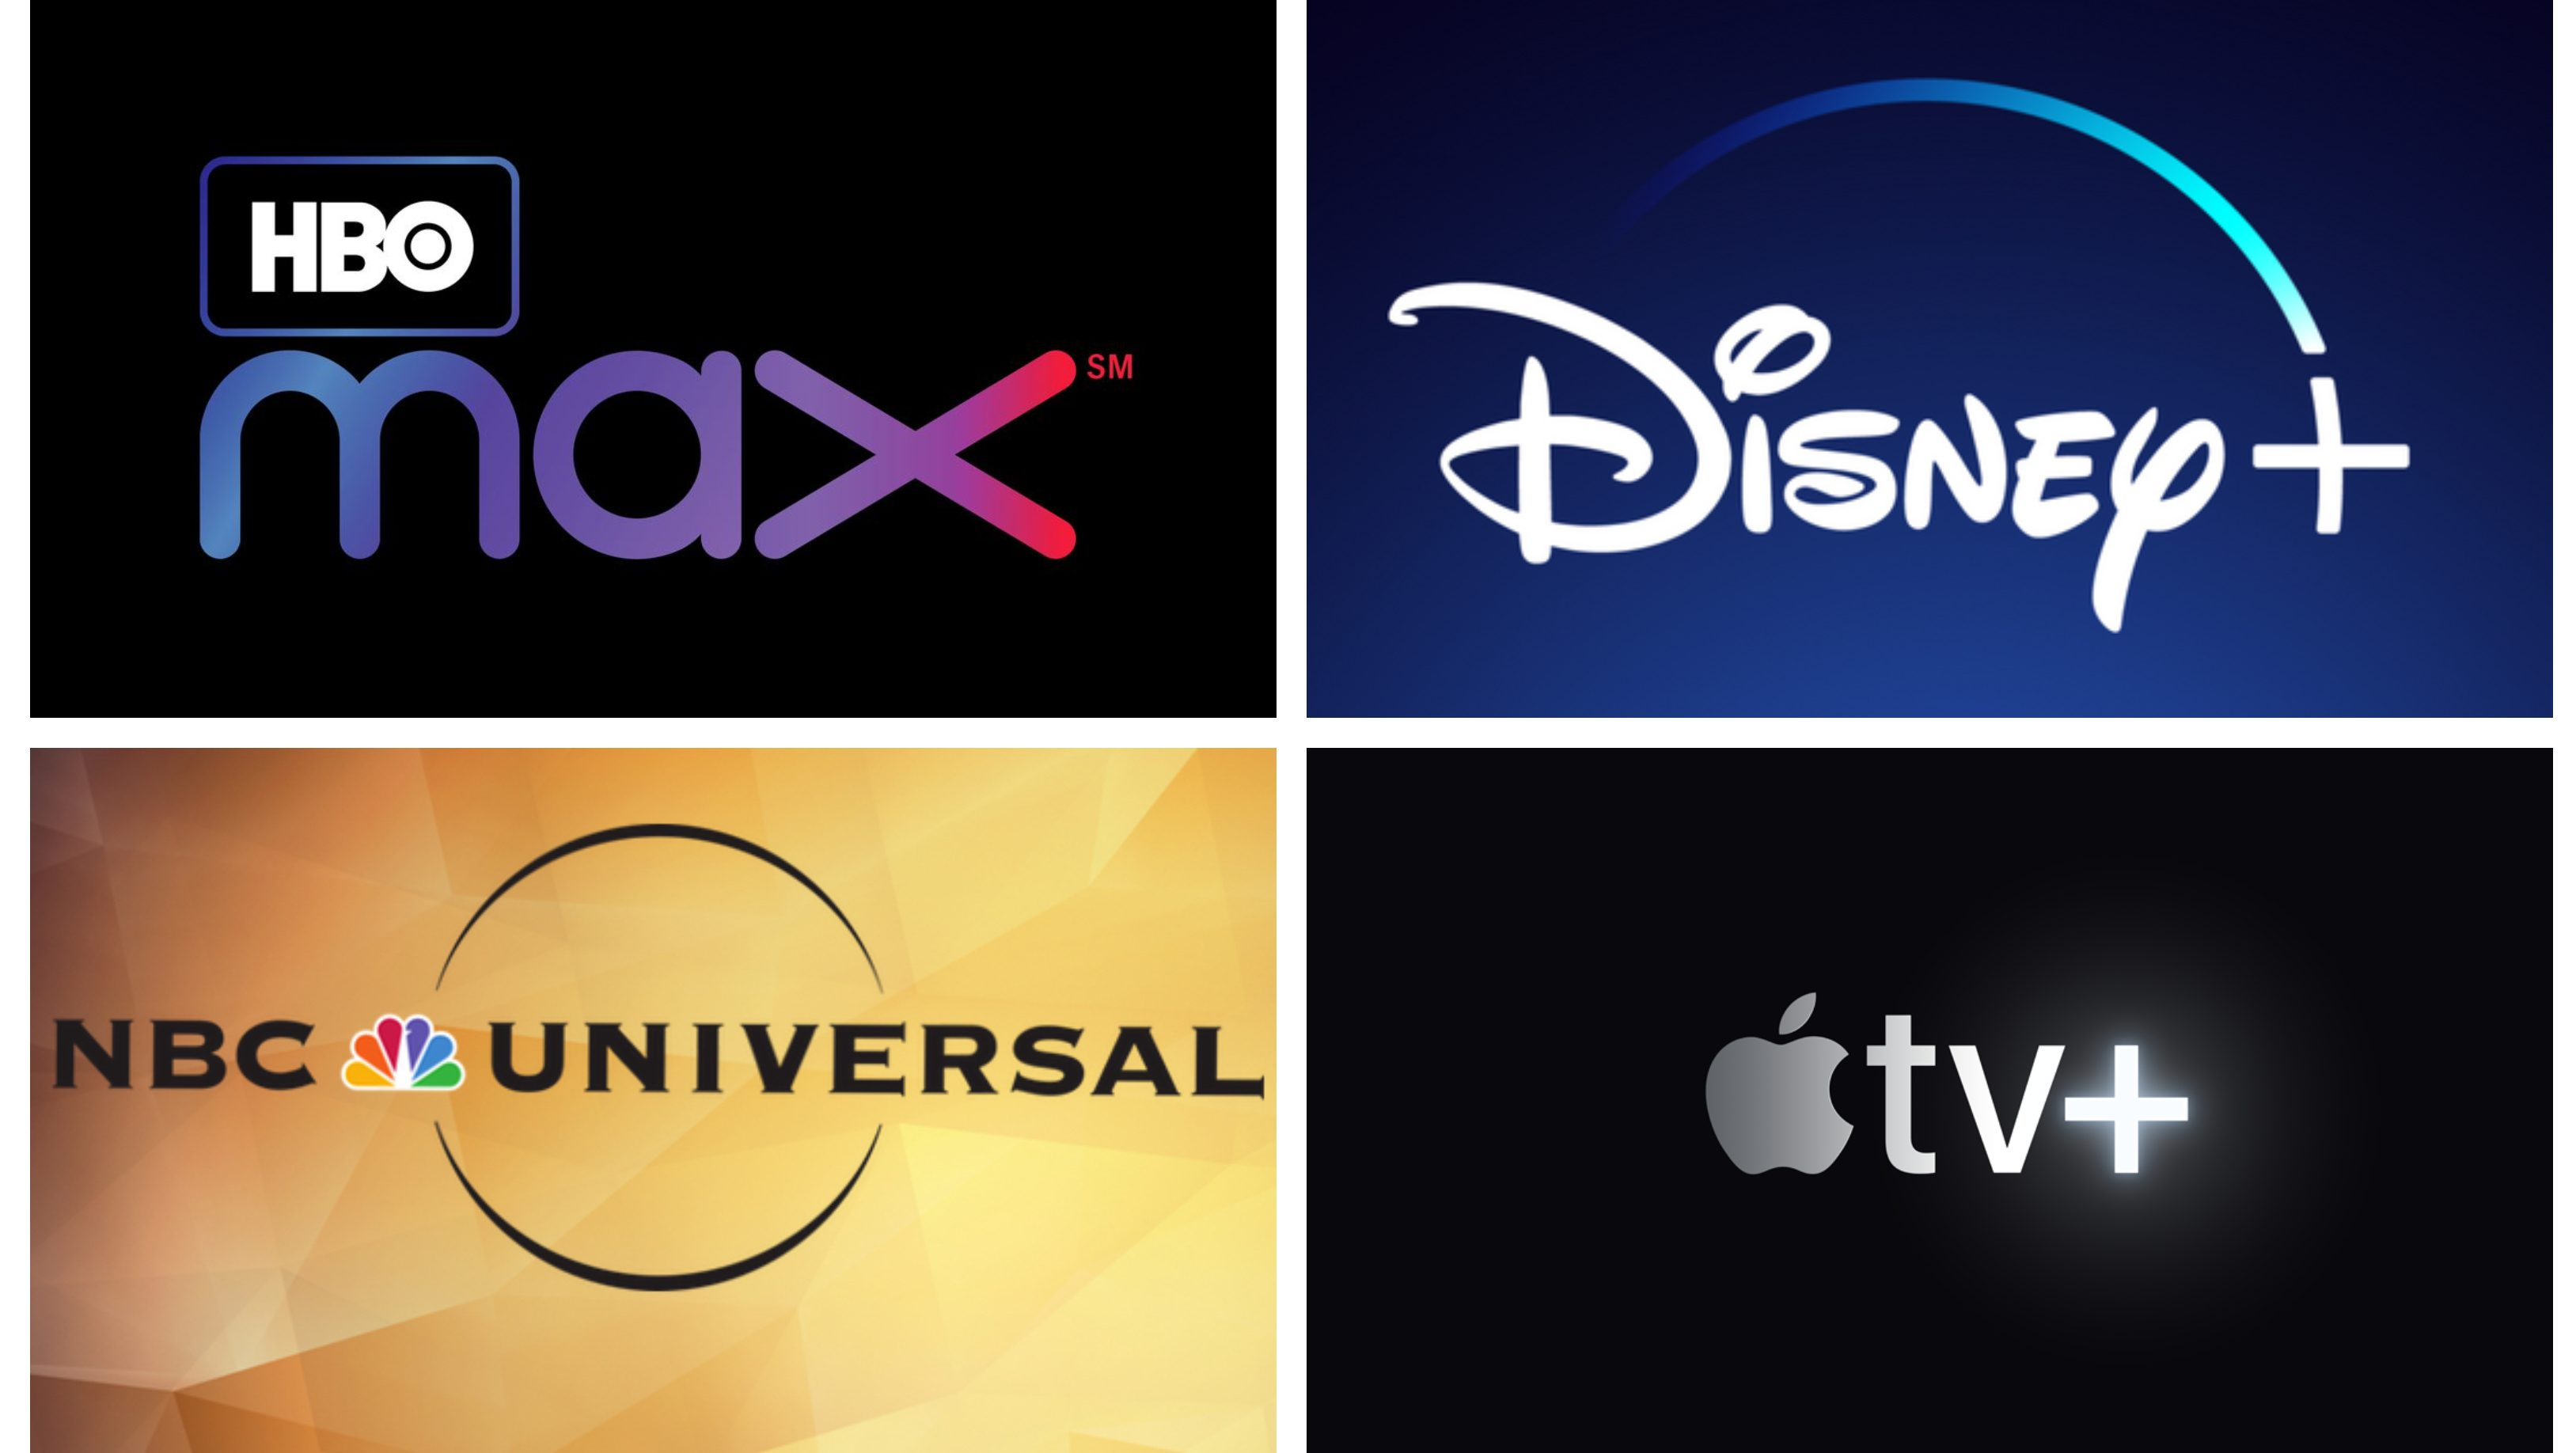 20 great free streaming services for cord cutters